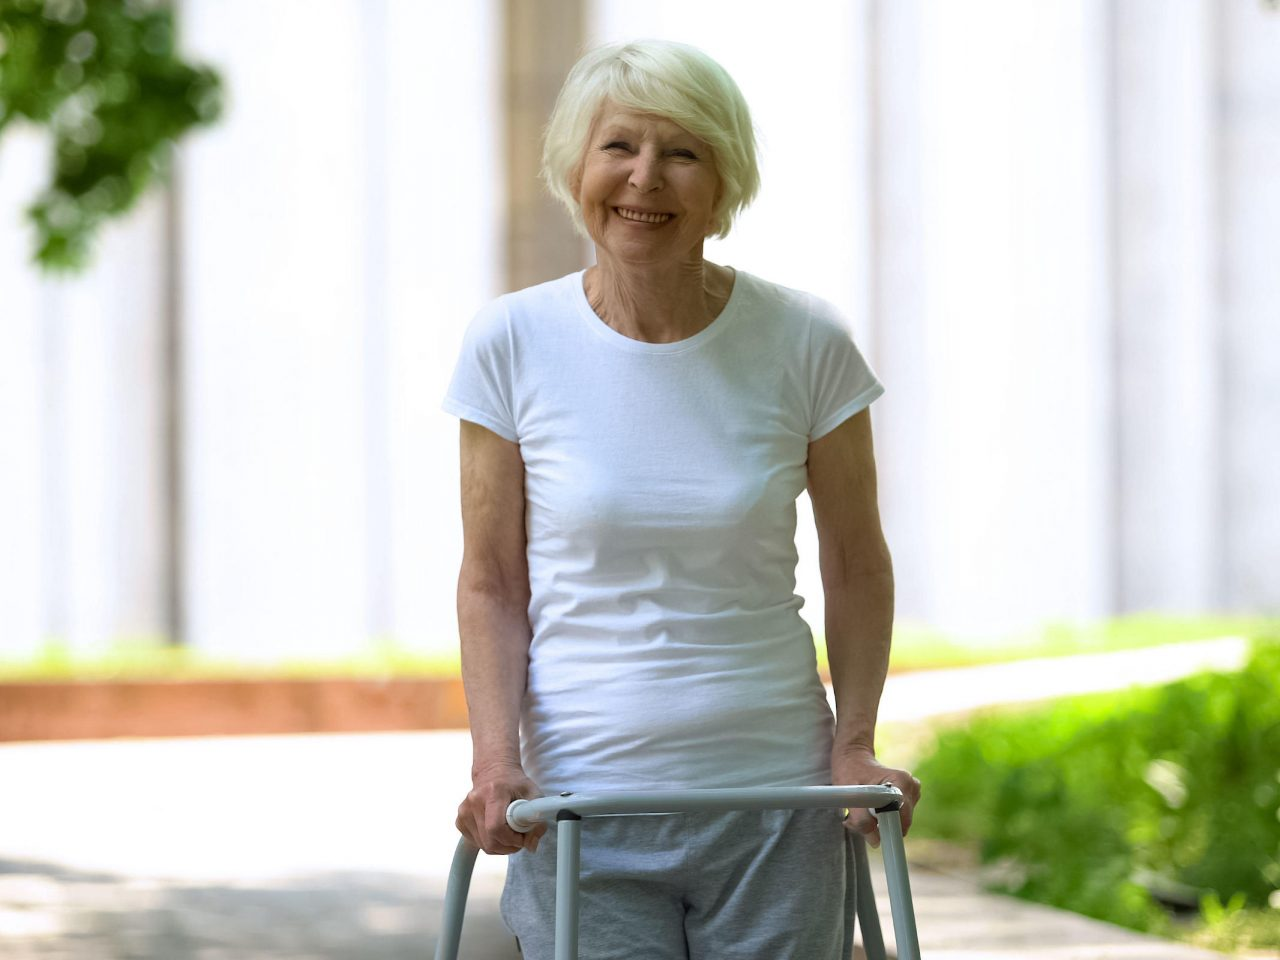 Home visit physiotherapy for female walking in park after surgery rehab Action Home Rehab